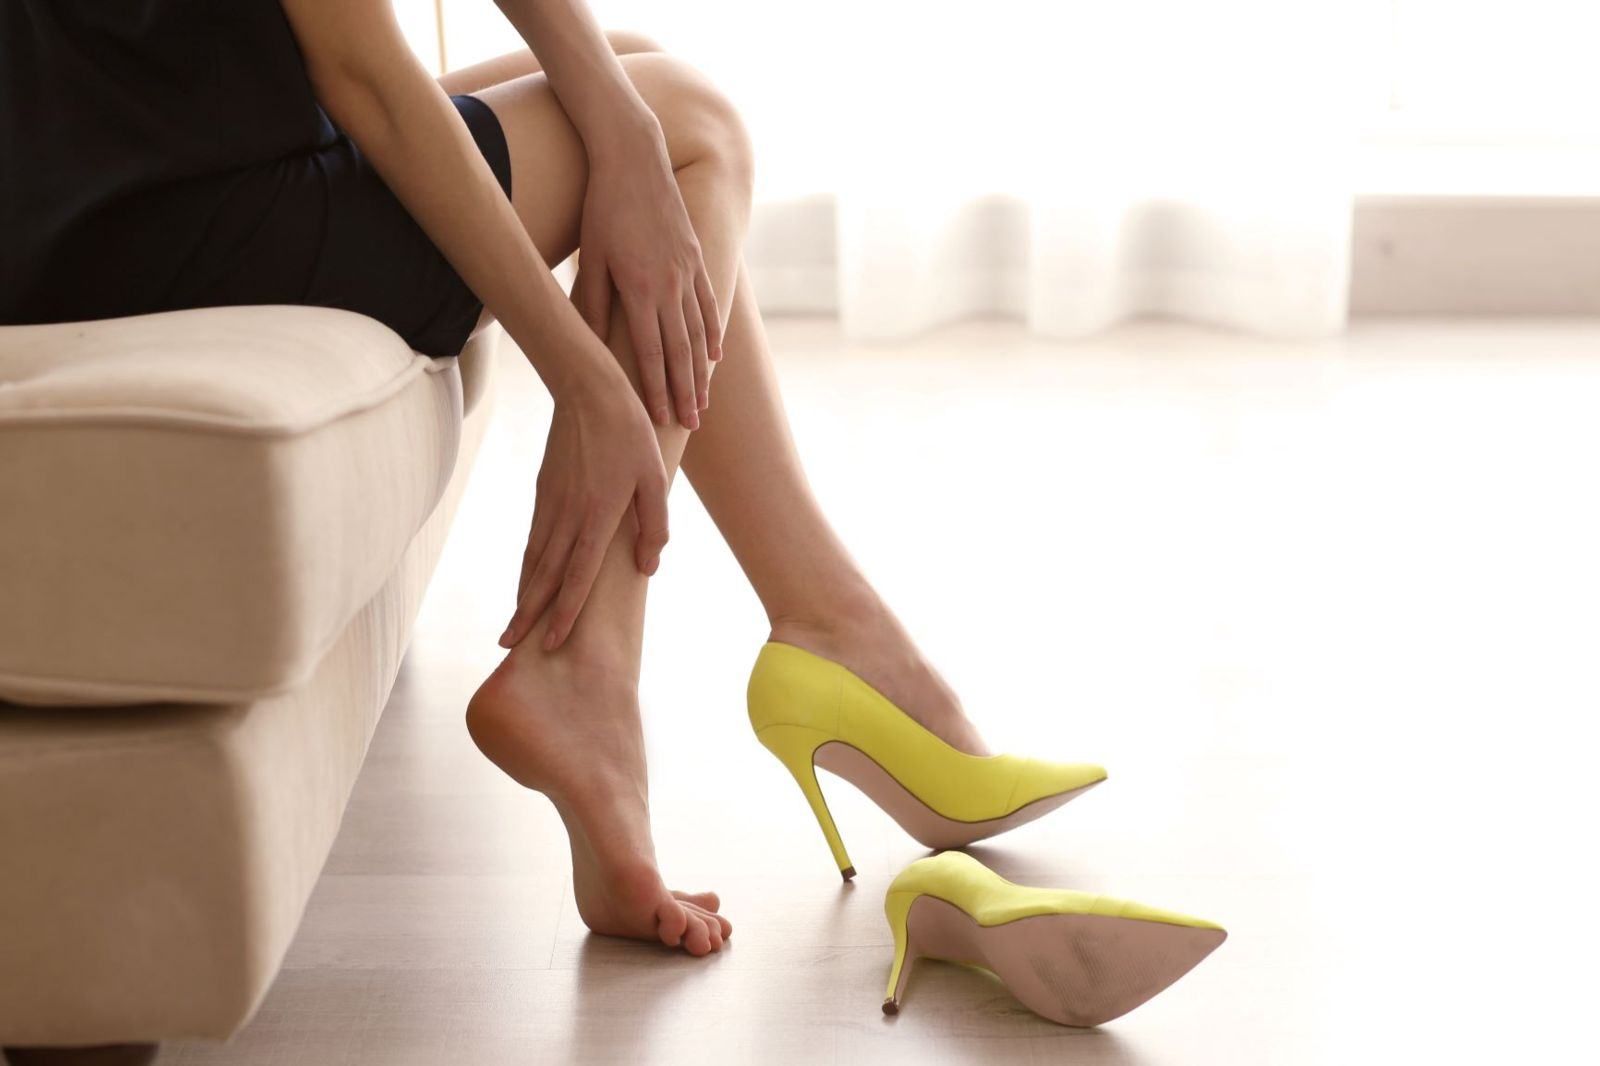 Tips to stop pain from wearing high heels